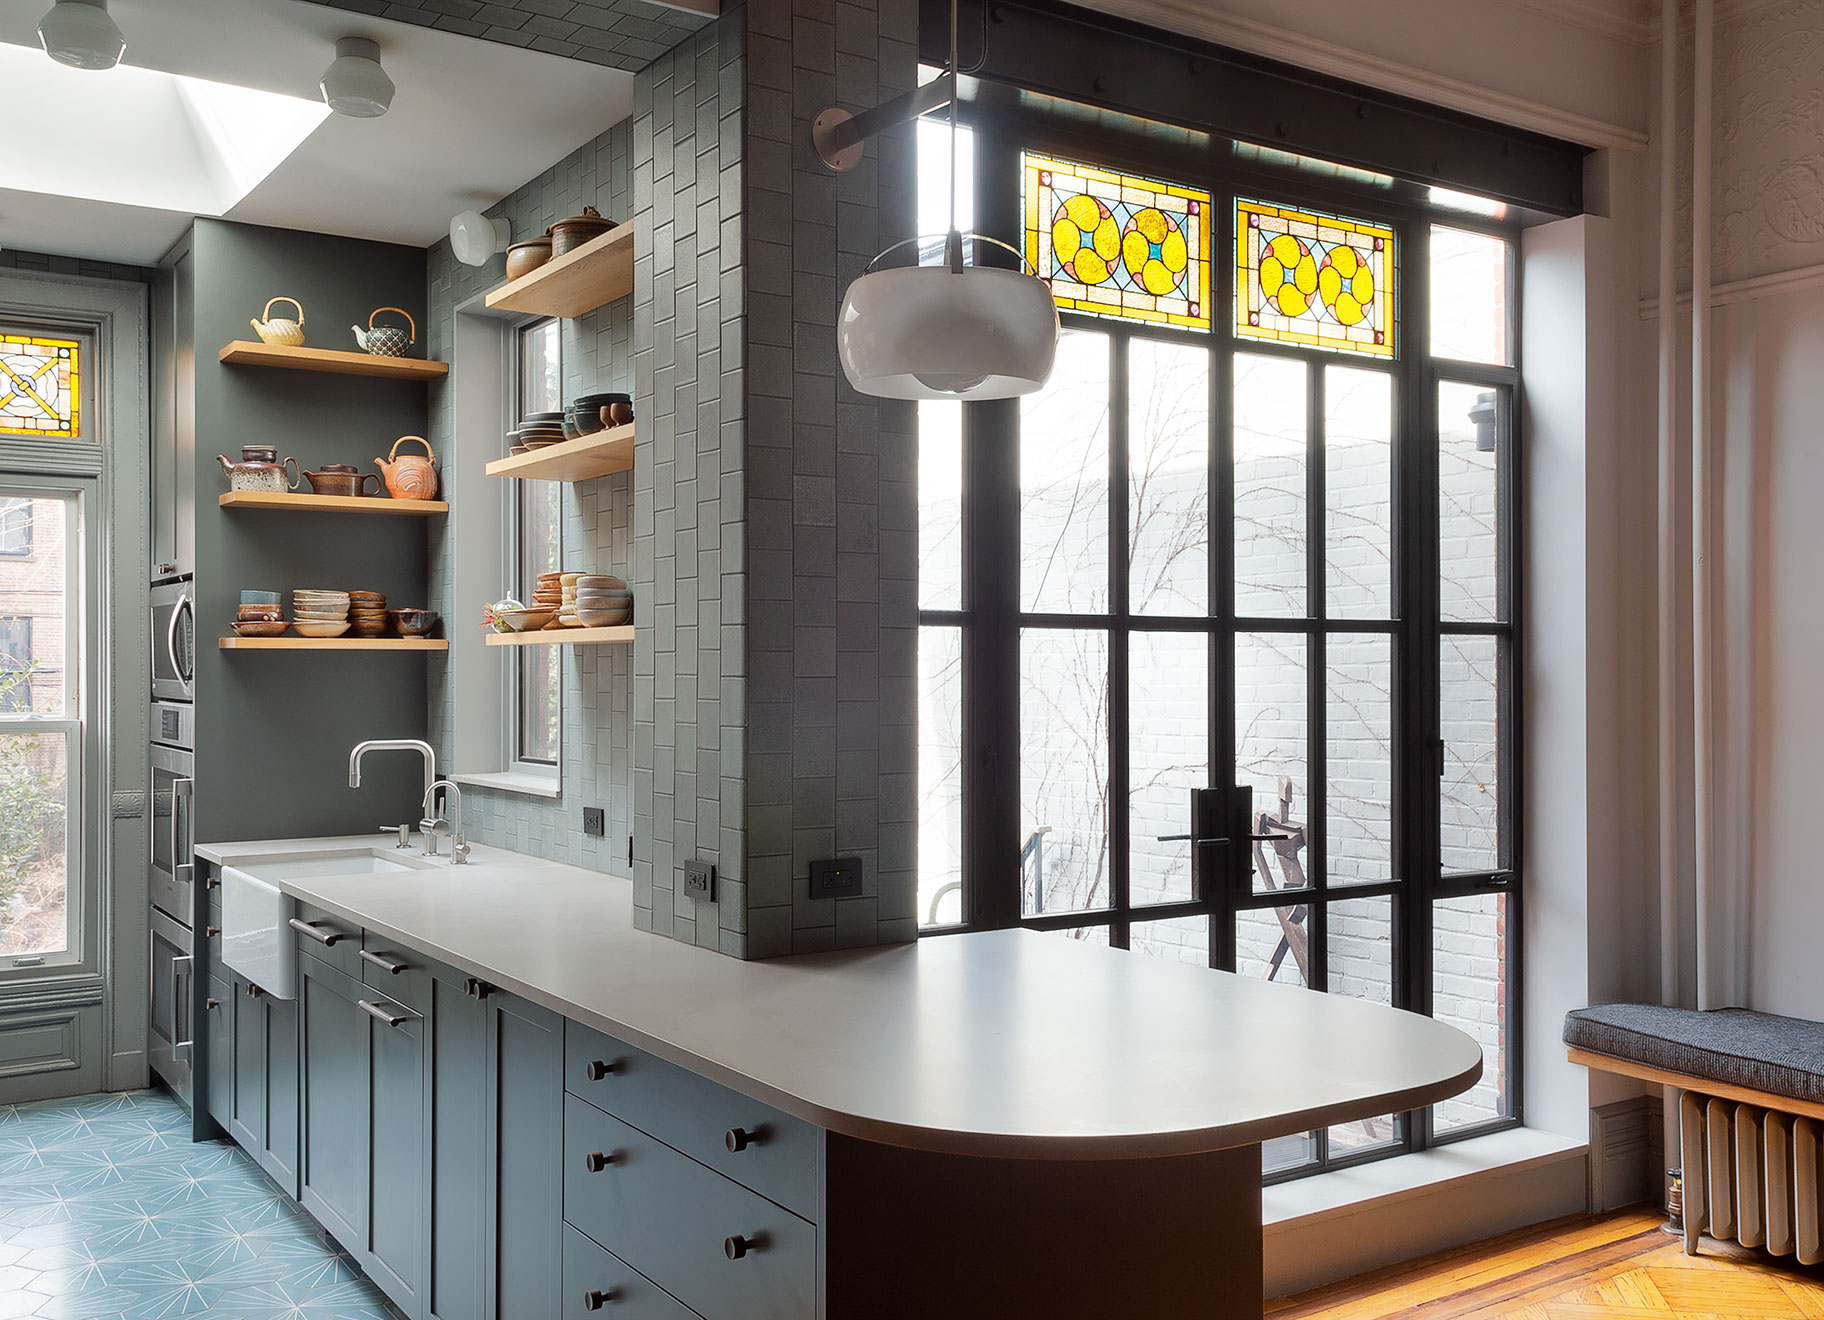 Doors and Passages  This venerable, Park Slope, Brooklyn, brownstone had numerous original details, many of which the owners wanted to keep. However, they wanted to mix in a modern sensibility, in a respectful way, while optimizing the house for their lifestyle. This included opening the kitchen to the dining room, adding a rear glass wall, deck, and secret powder room.